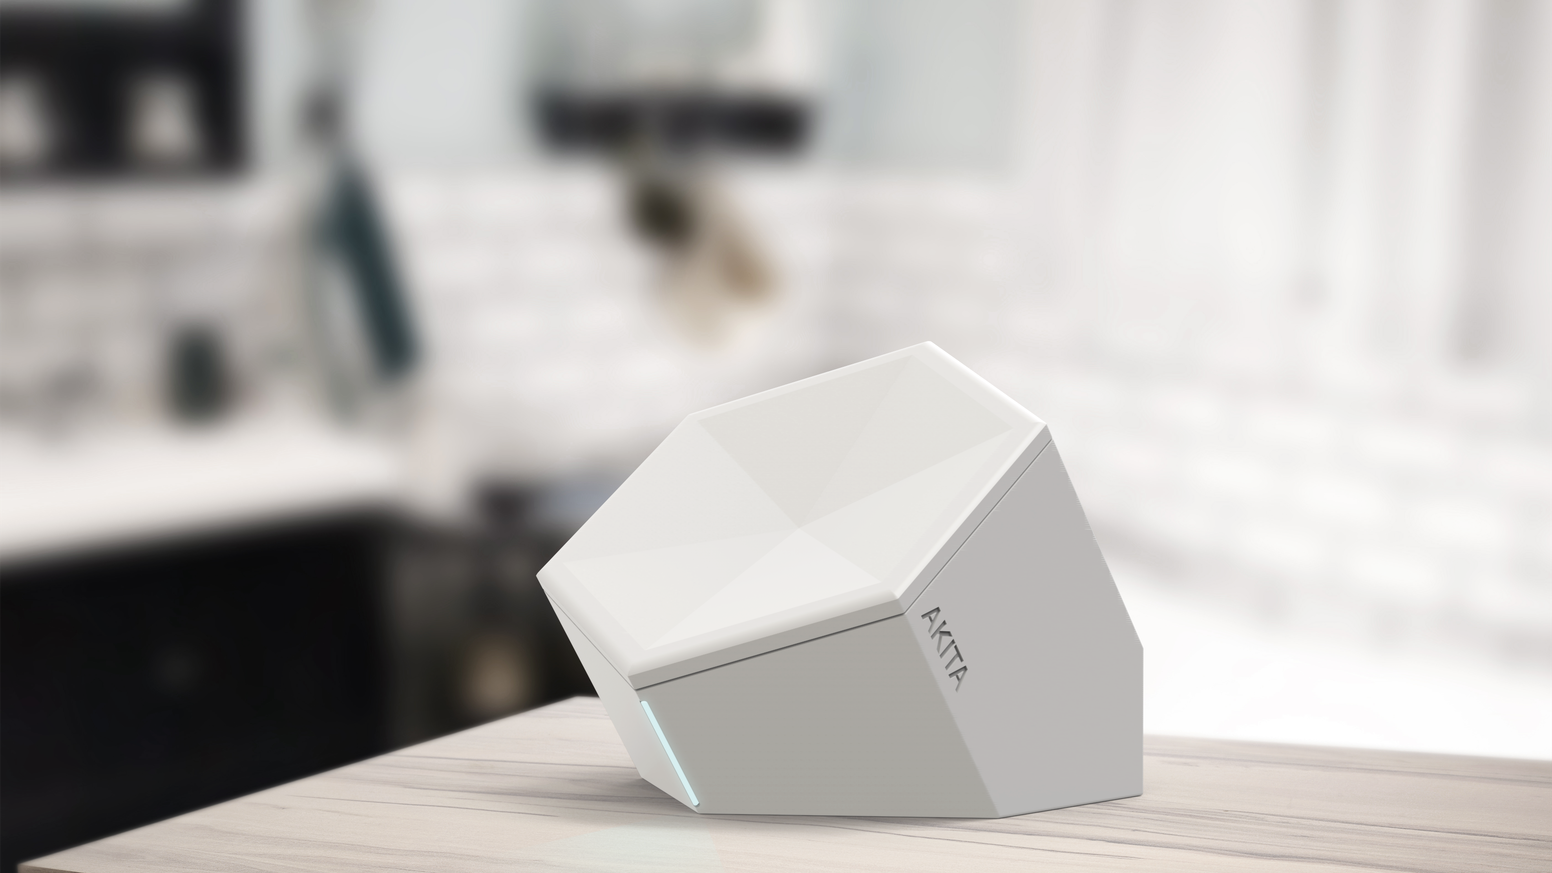 Protect your home from IoT invasions and hacks with Akita, the IoT device watchdog station.